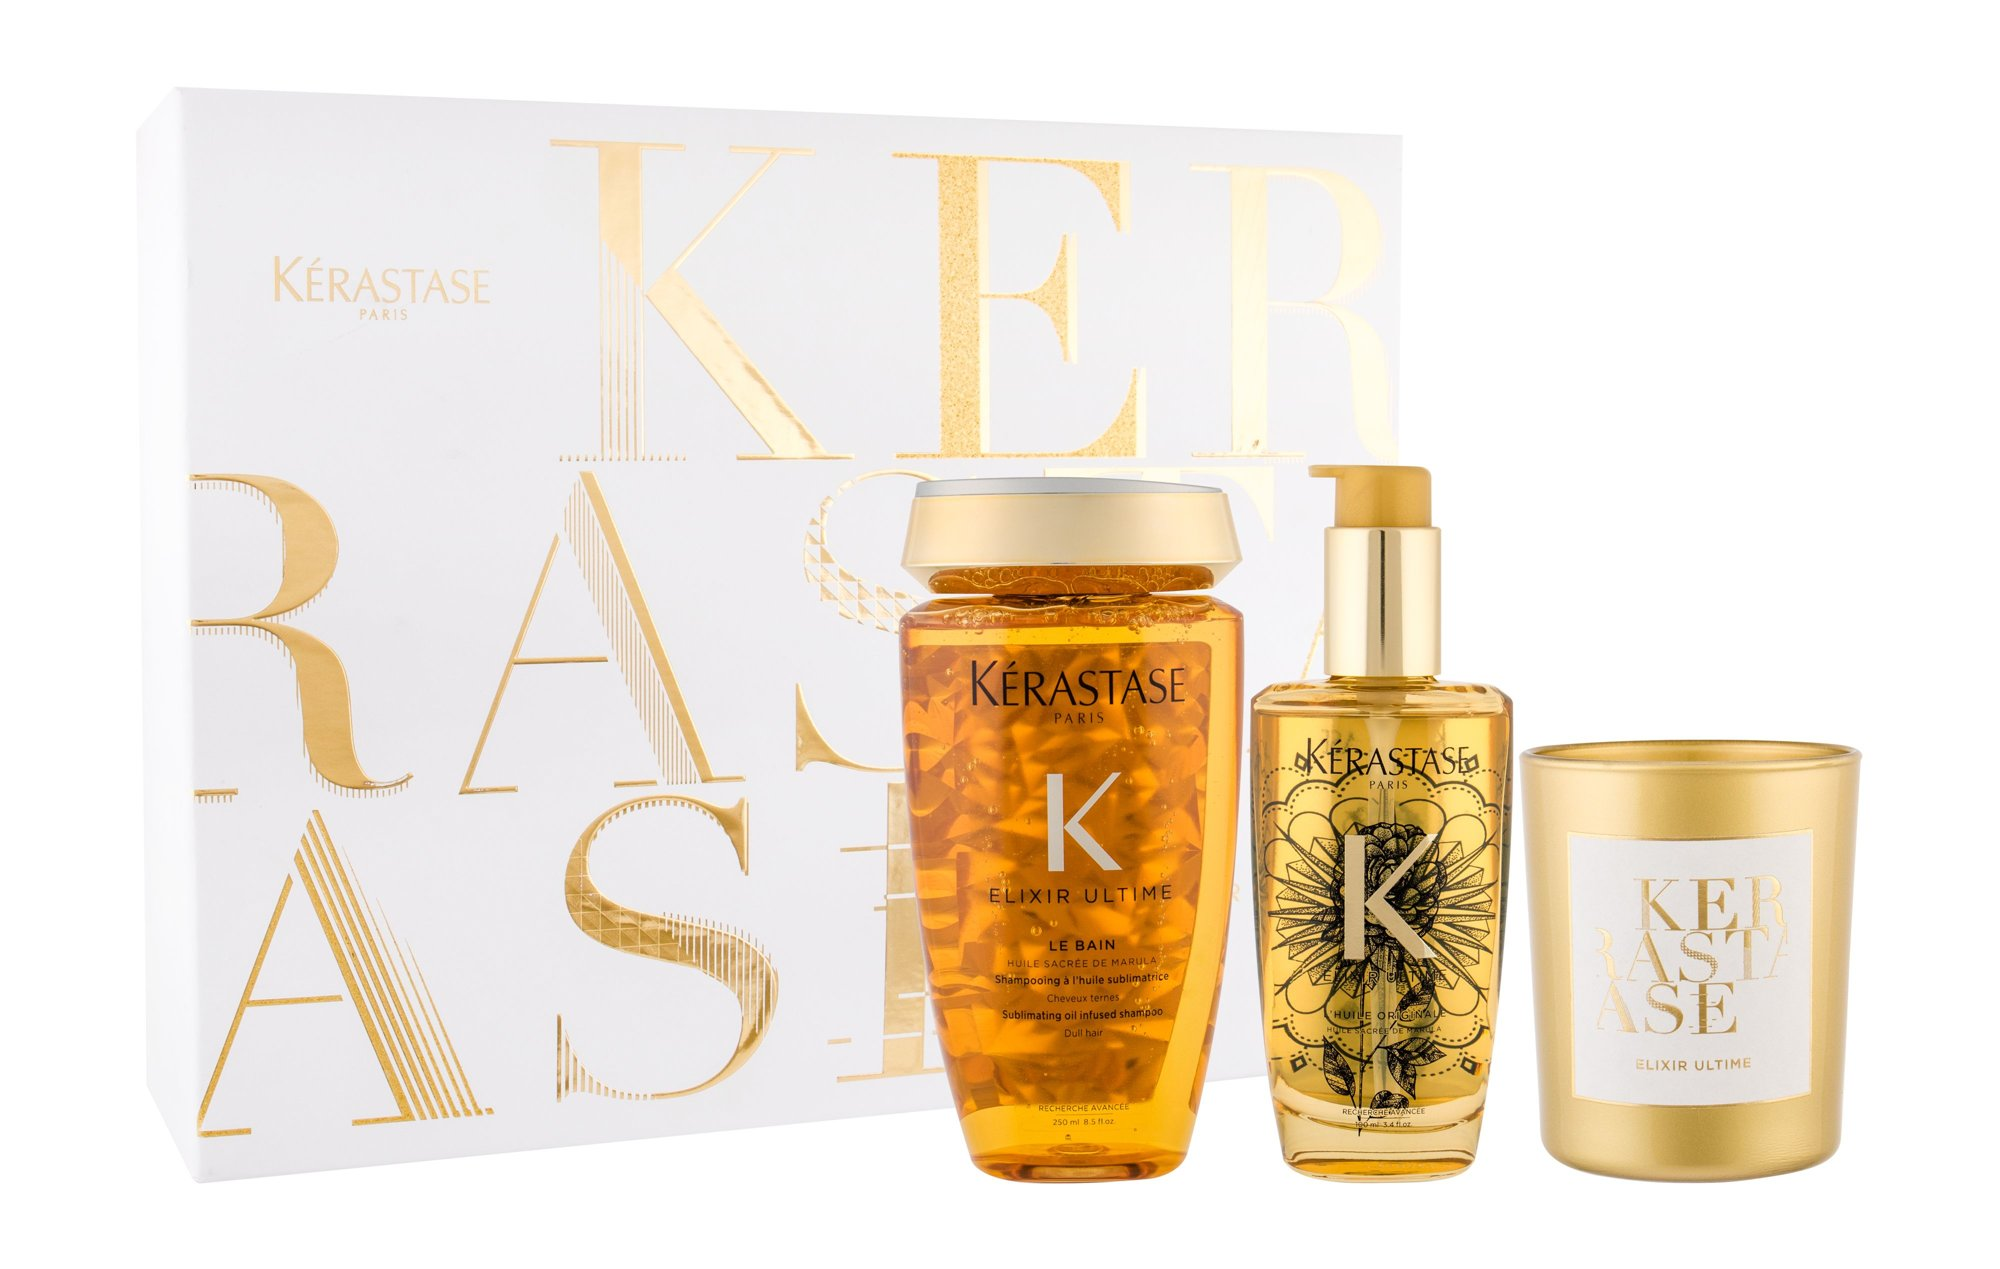 Kérastase Elixir Ultime Hair Oils and Serum 100ml